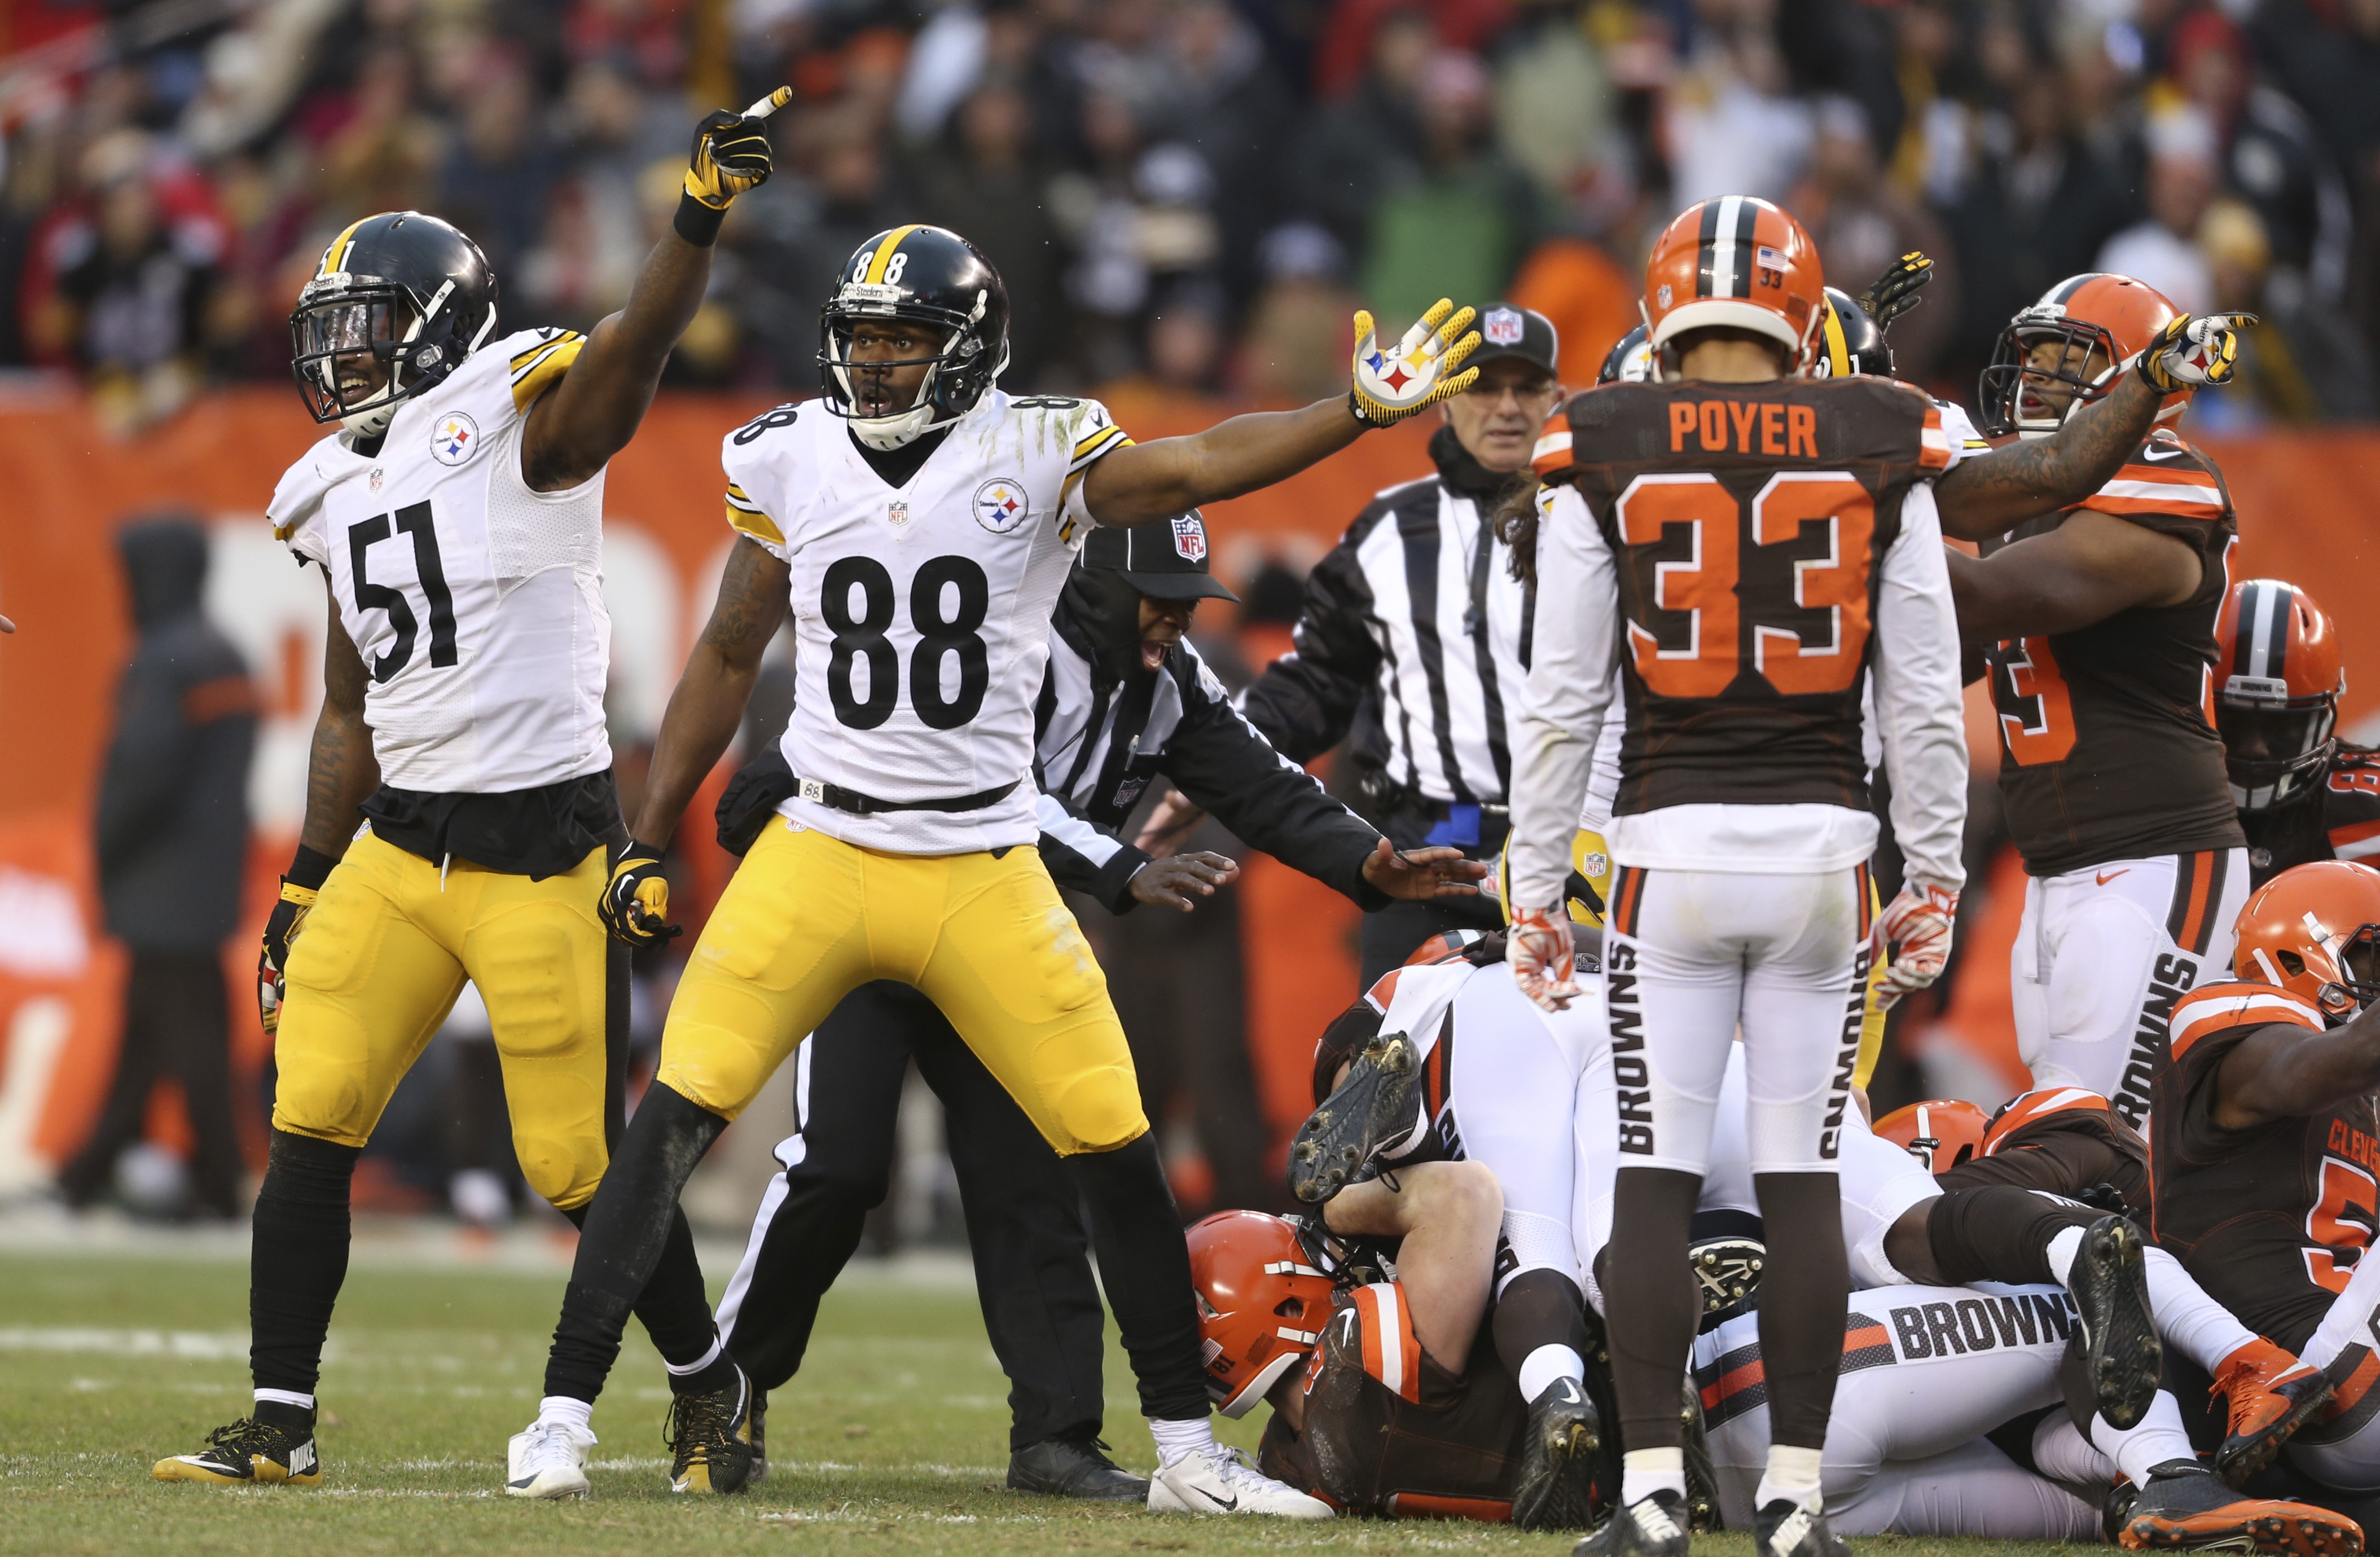 Pittsburgh Steelers inside linebacker Sean Spence (51) and wide receiver Darrius Heyward-Bey (88) signal a first down after the Cleveland Browns fumbled the kickoff and Pittsburgh recovered during the second half of an NFL football game, Sunday, Jan. 3, 2